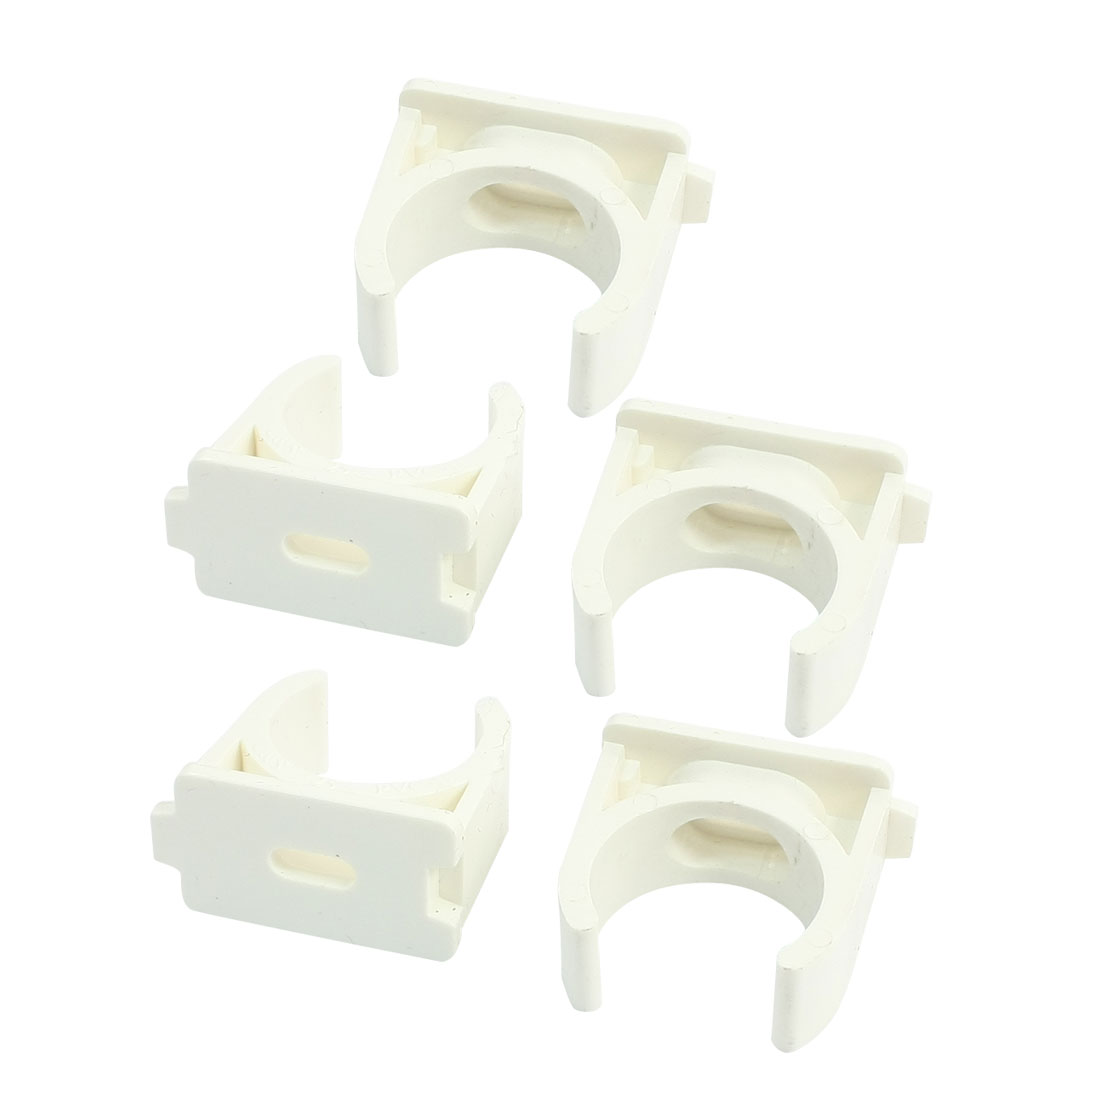 5Pcs 25mm Dia White PVC-U Push Snap in Clip Pipe Clamps for Water Supply